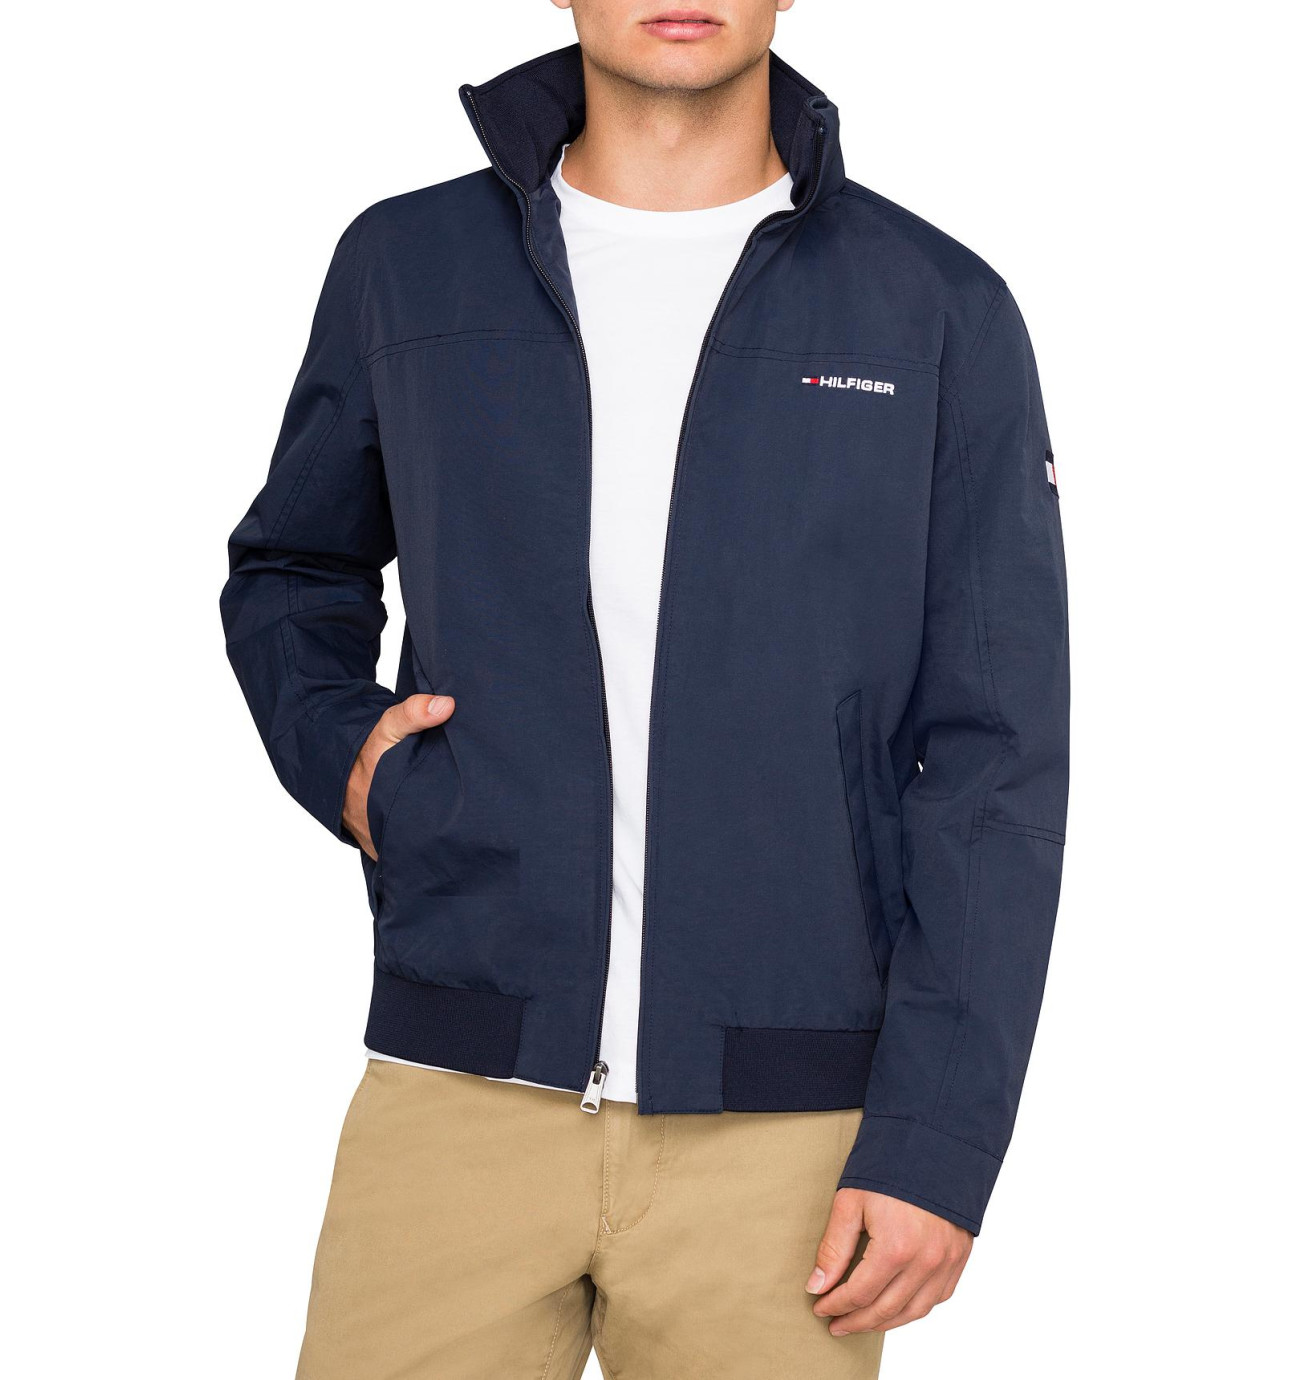 tommy hilfiger yachting jacke bergangsjacke windbreaker dunkelblau gr e l. Black Bedroom Furniture Sets. Home Design Ideas